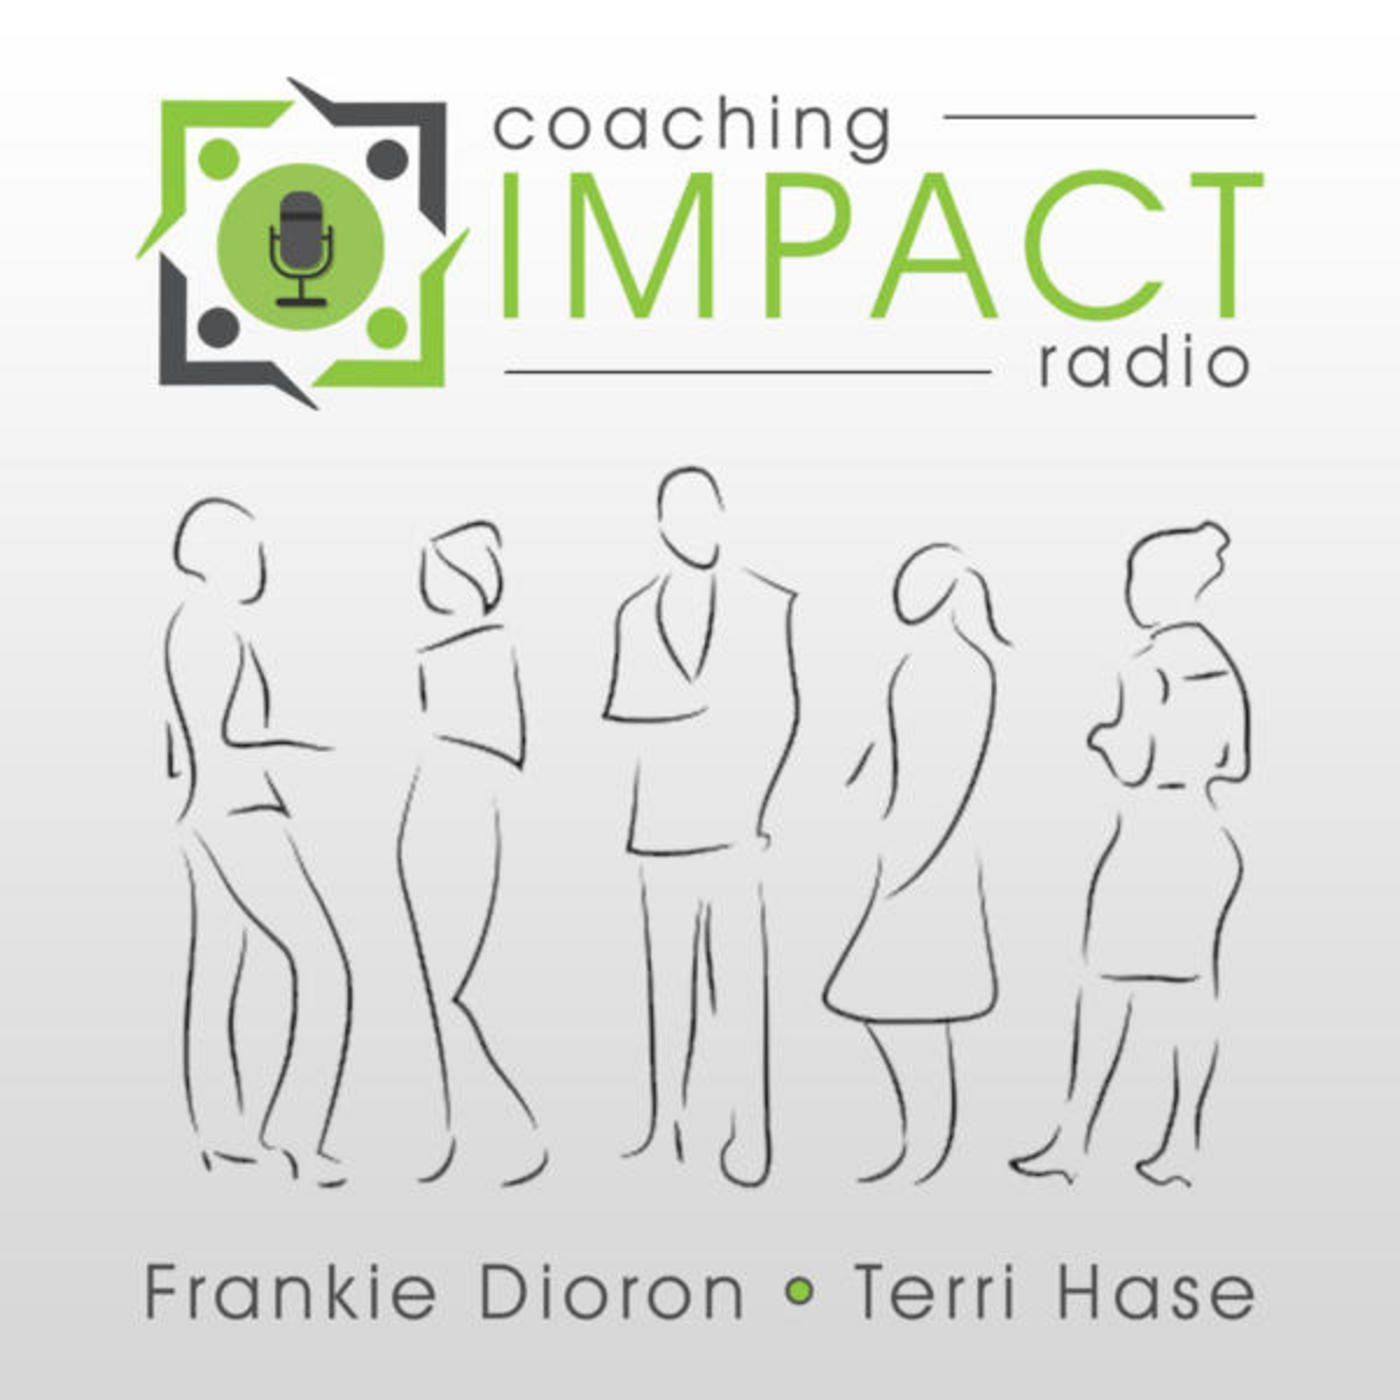 the impact of coaching in my life